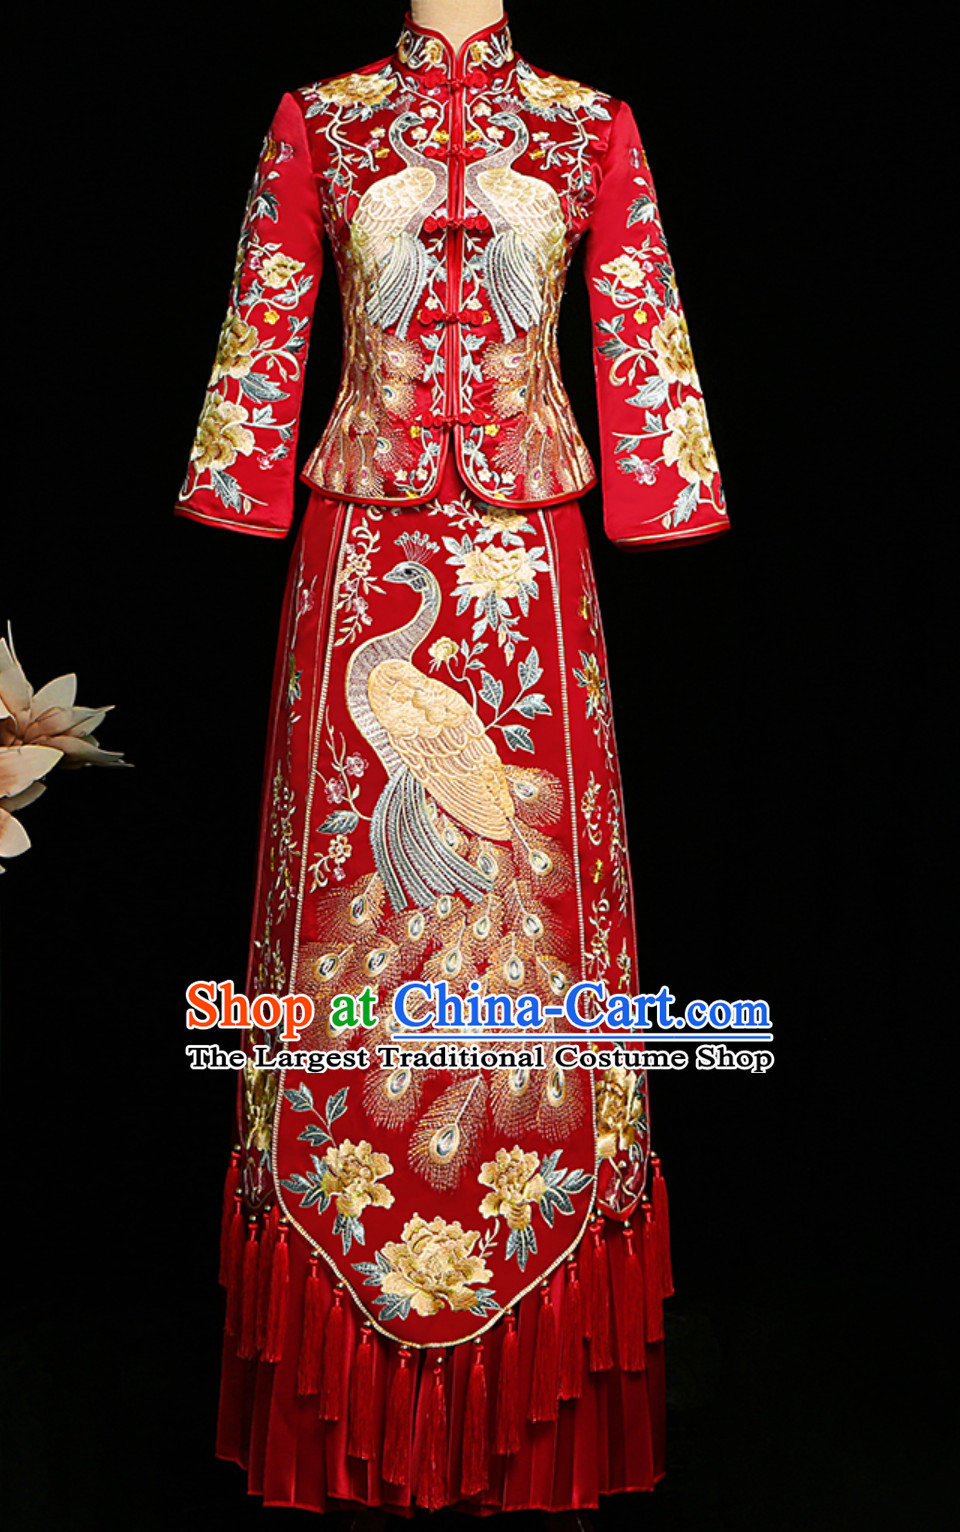 Top Red Tassels Chinese Classical Embroidered Phoenix Ancient Bride Wedding Dresses for Women